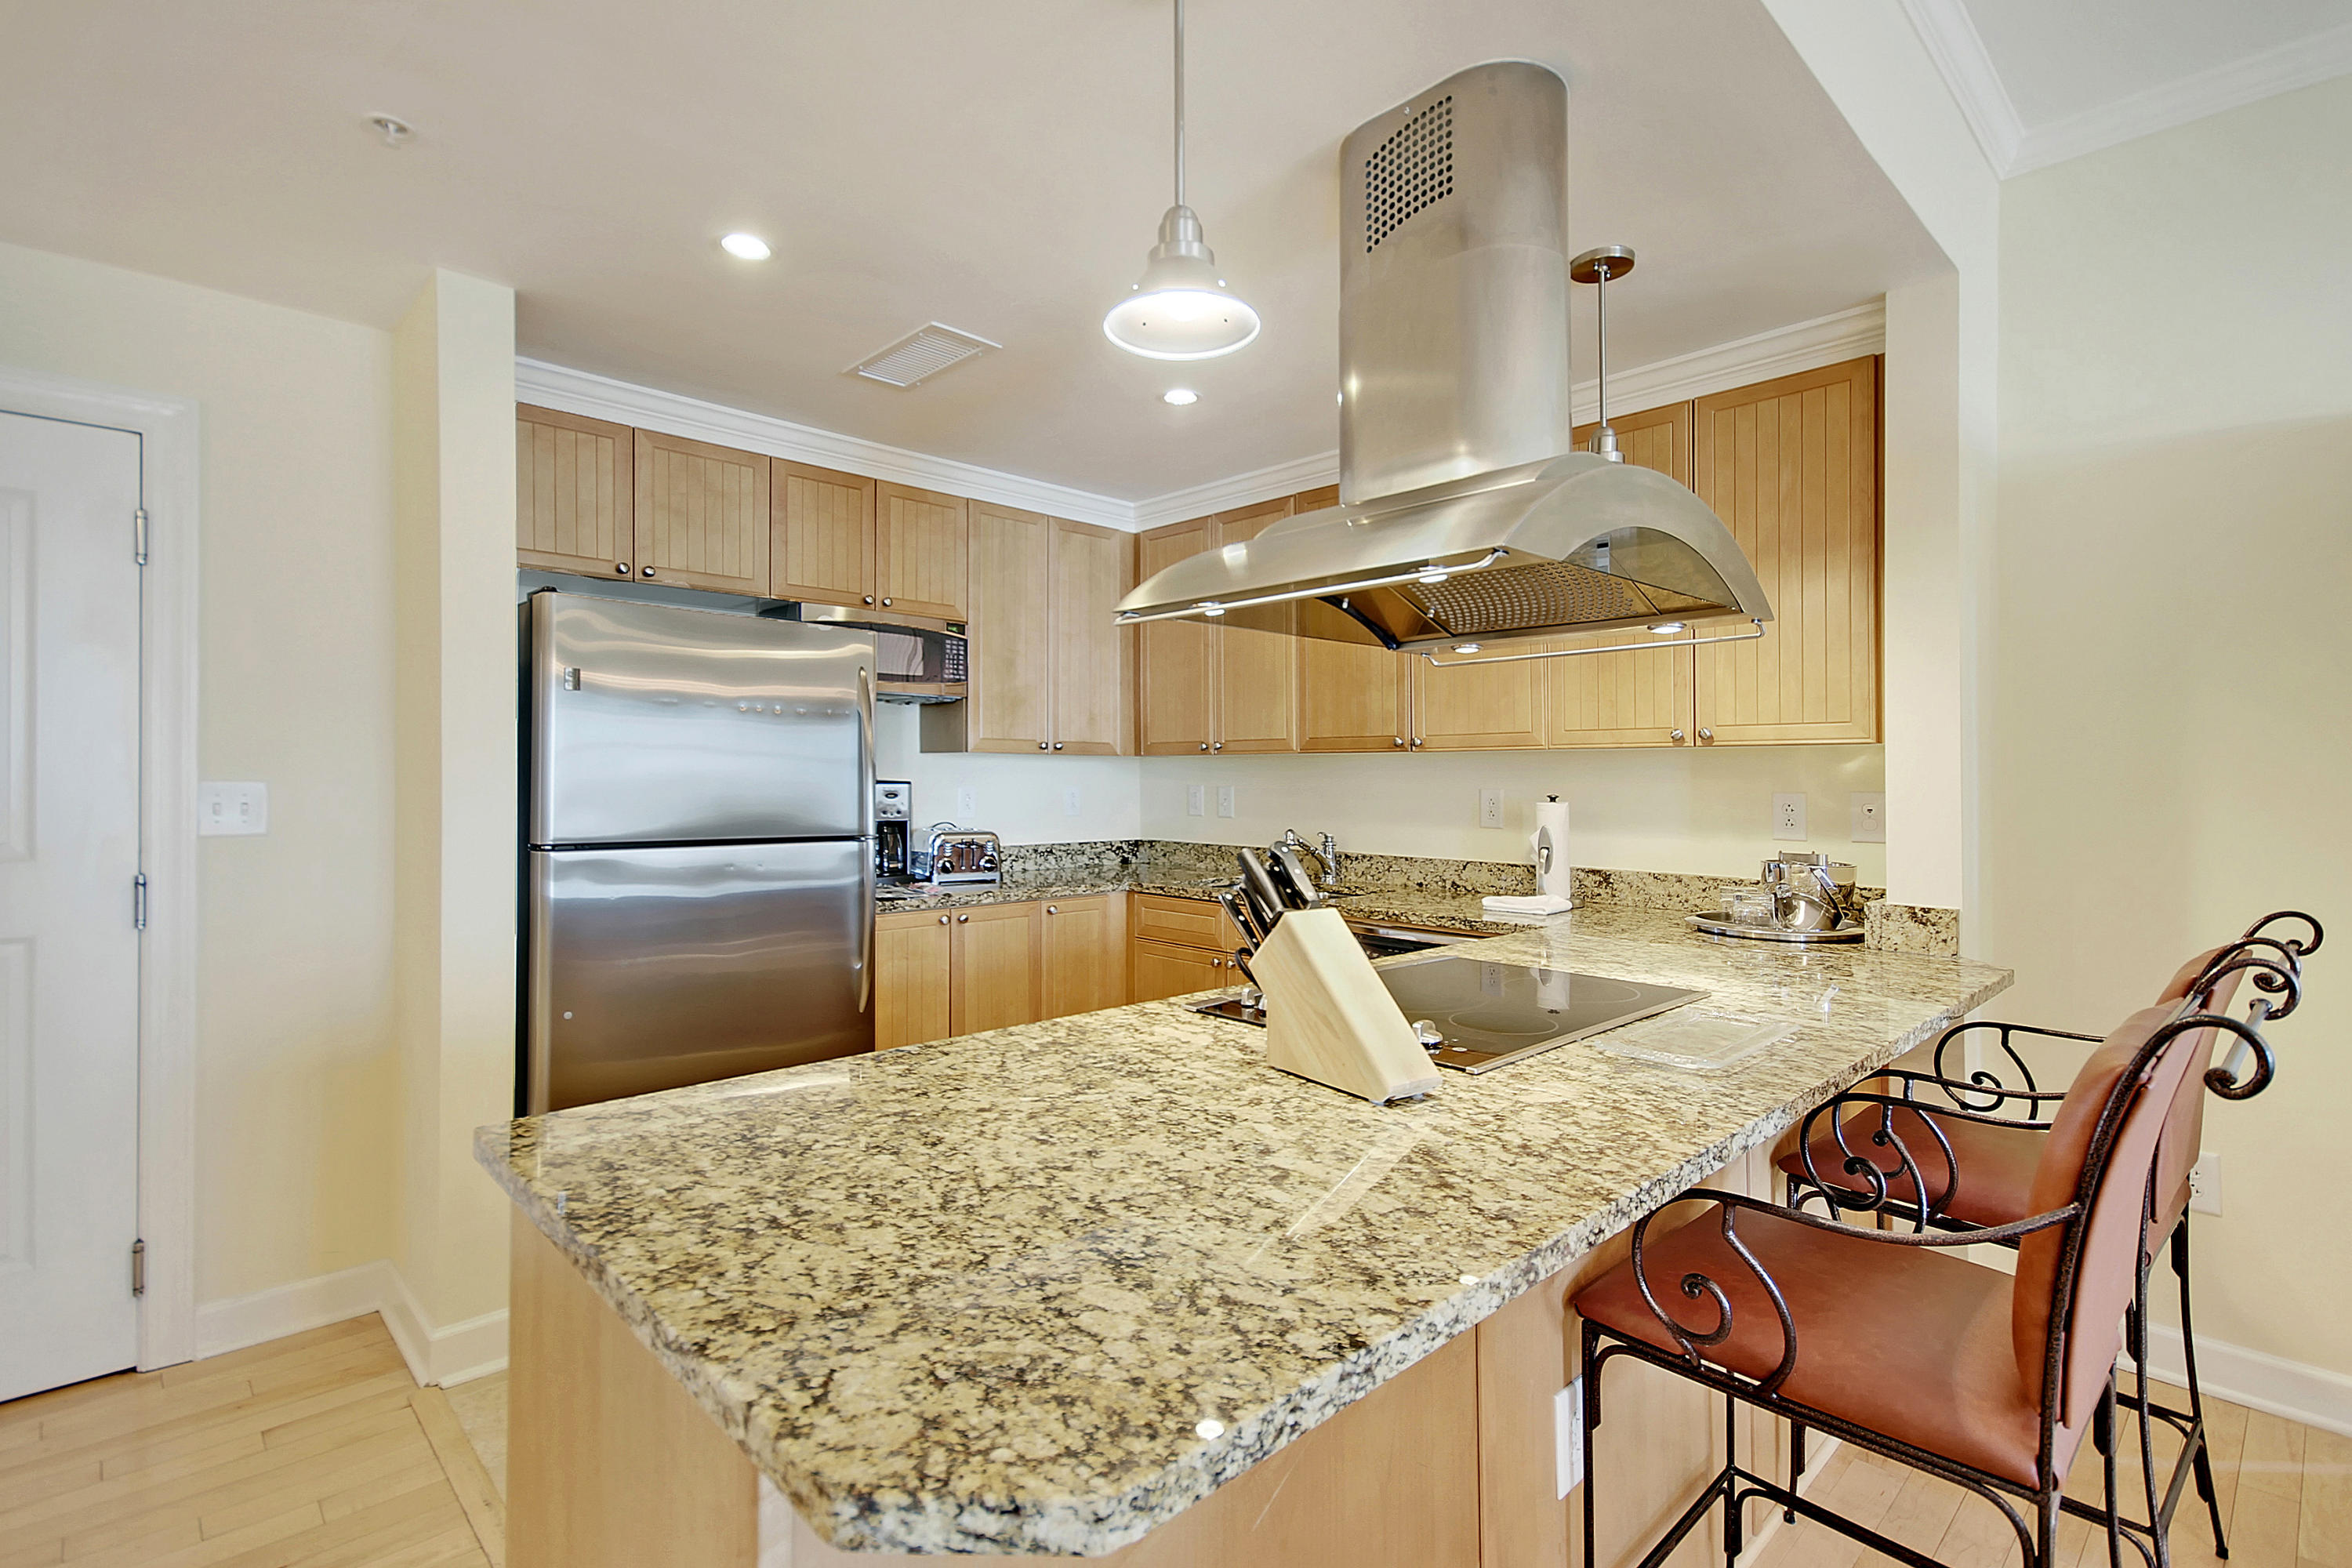 Wild Dunes Homes For Sale - 415/417-B The Village At Wild Dunes, Isle of Palms, SC - 1